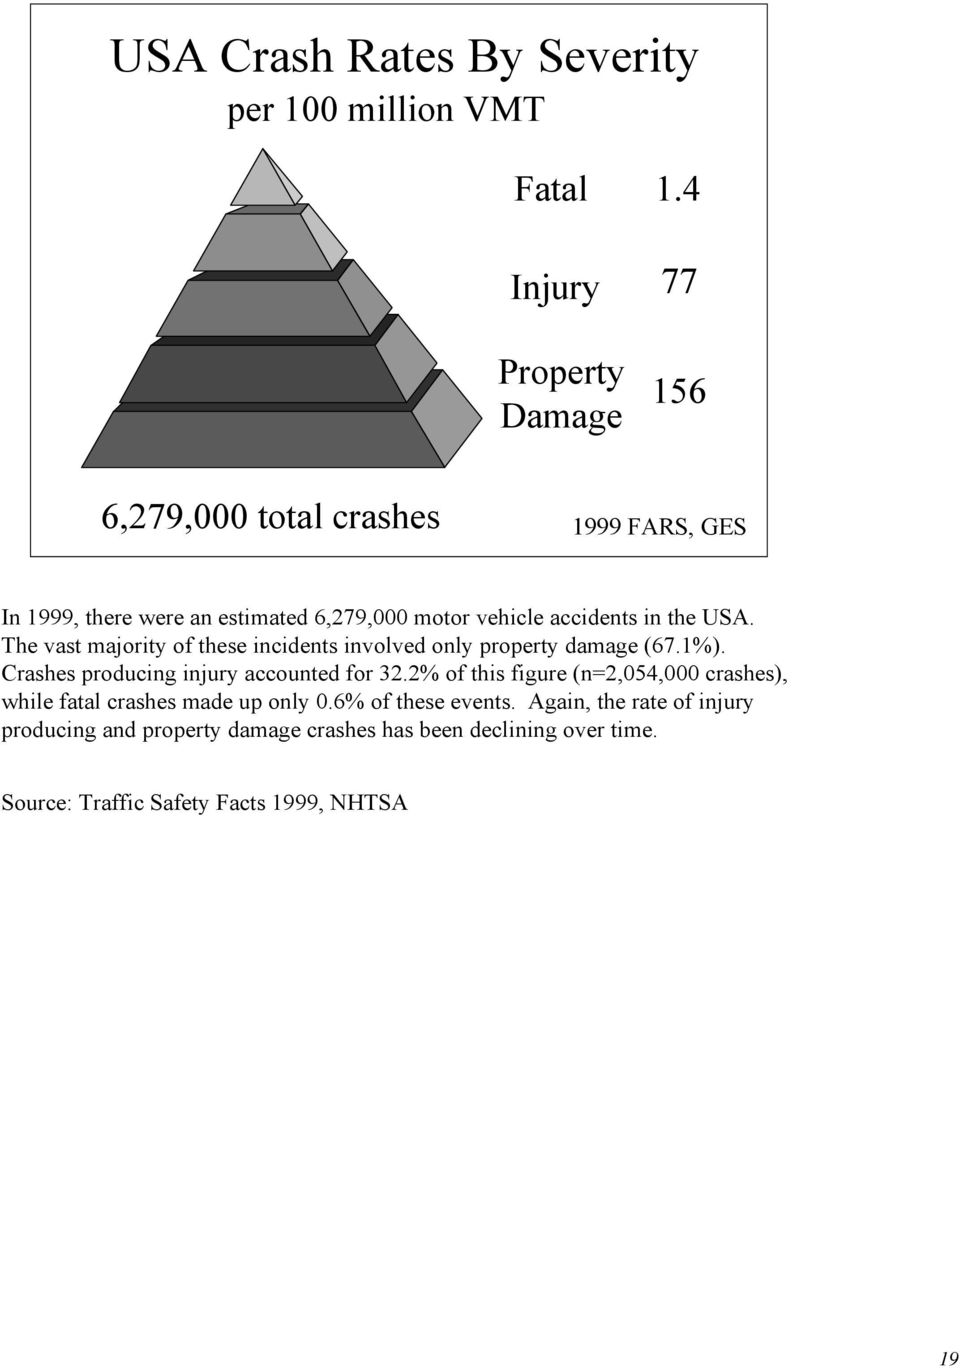 The vast majority of these incidents involved only property damage (67.1%). Crashes producing injury accounted for 32.